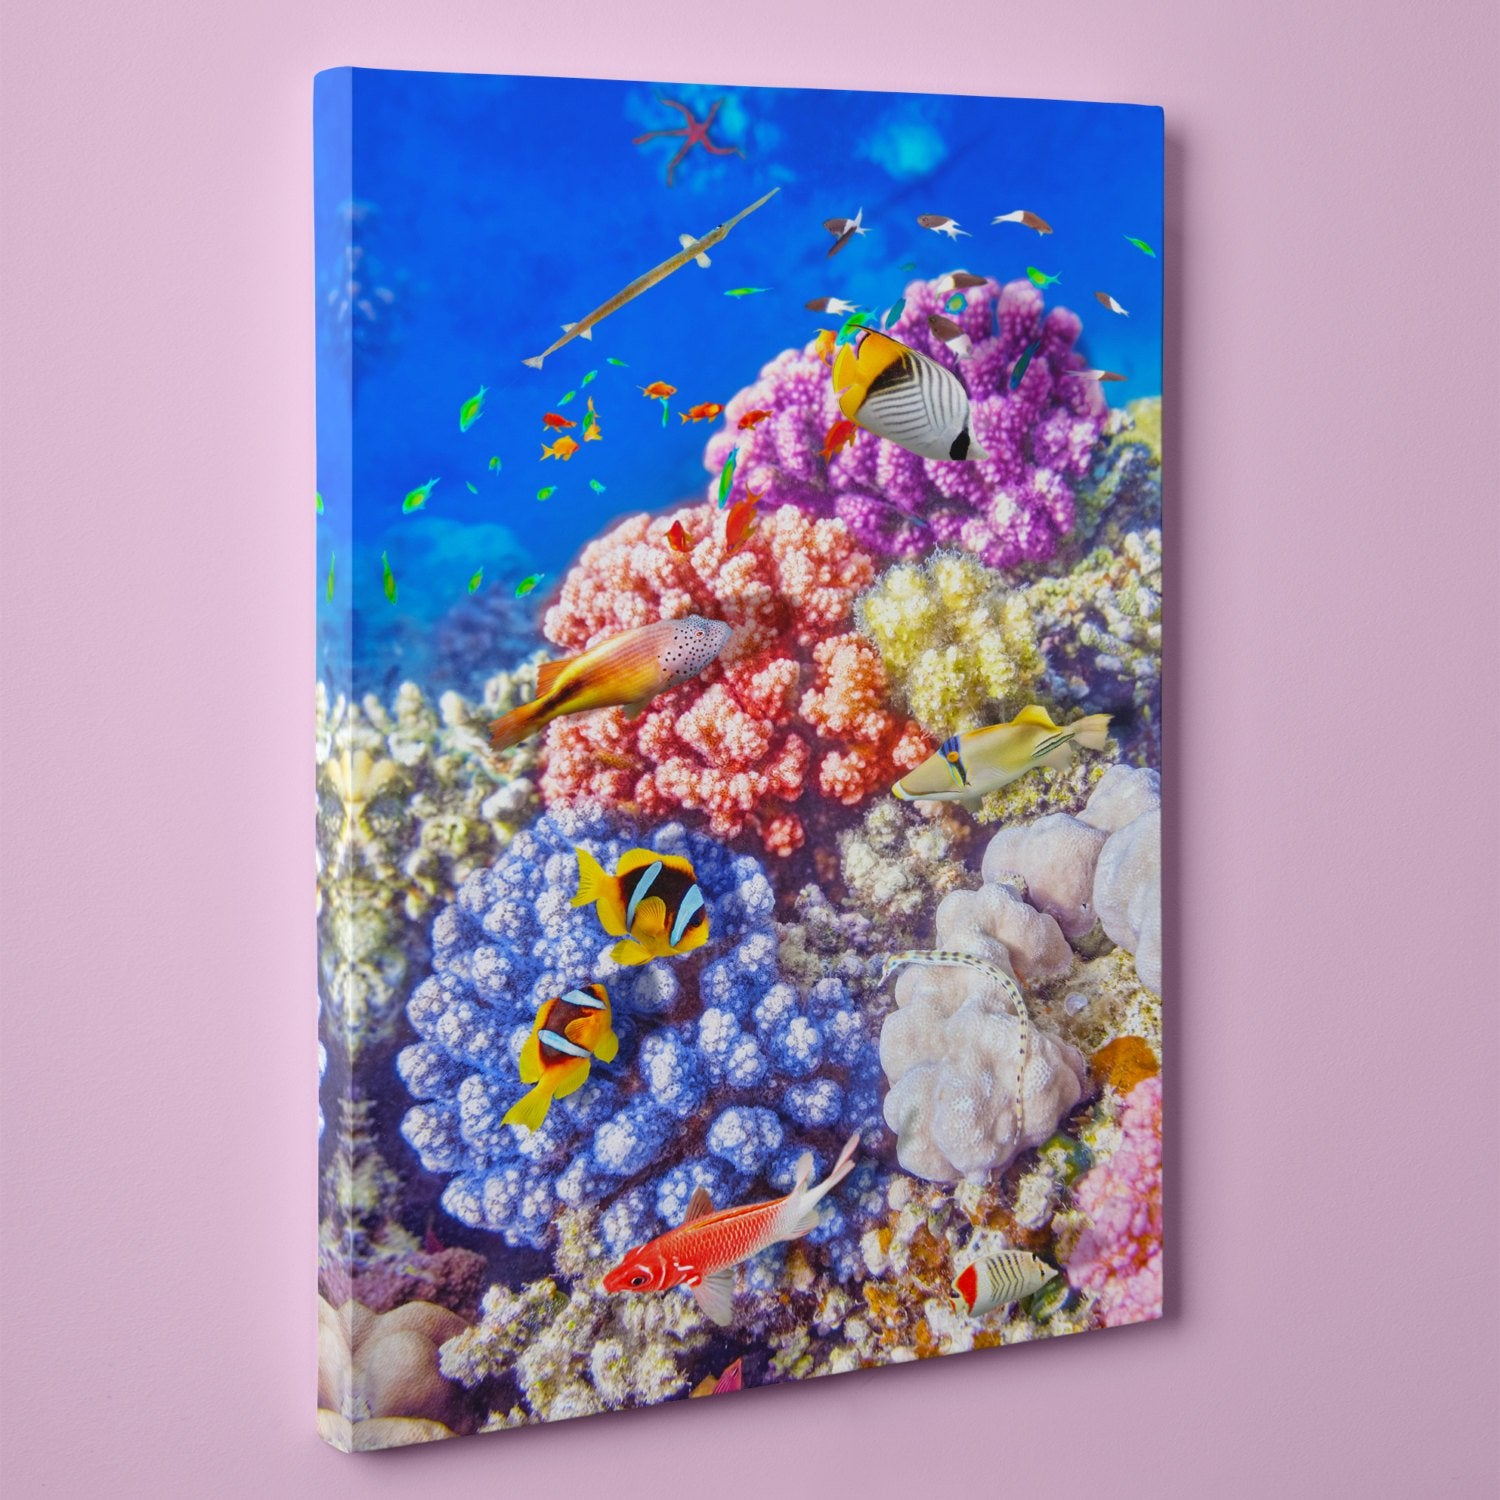 "Caribbean Coral and Tropical Fish, Underwater Photo (16"" x 24"") - Canvas Wrap Print"